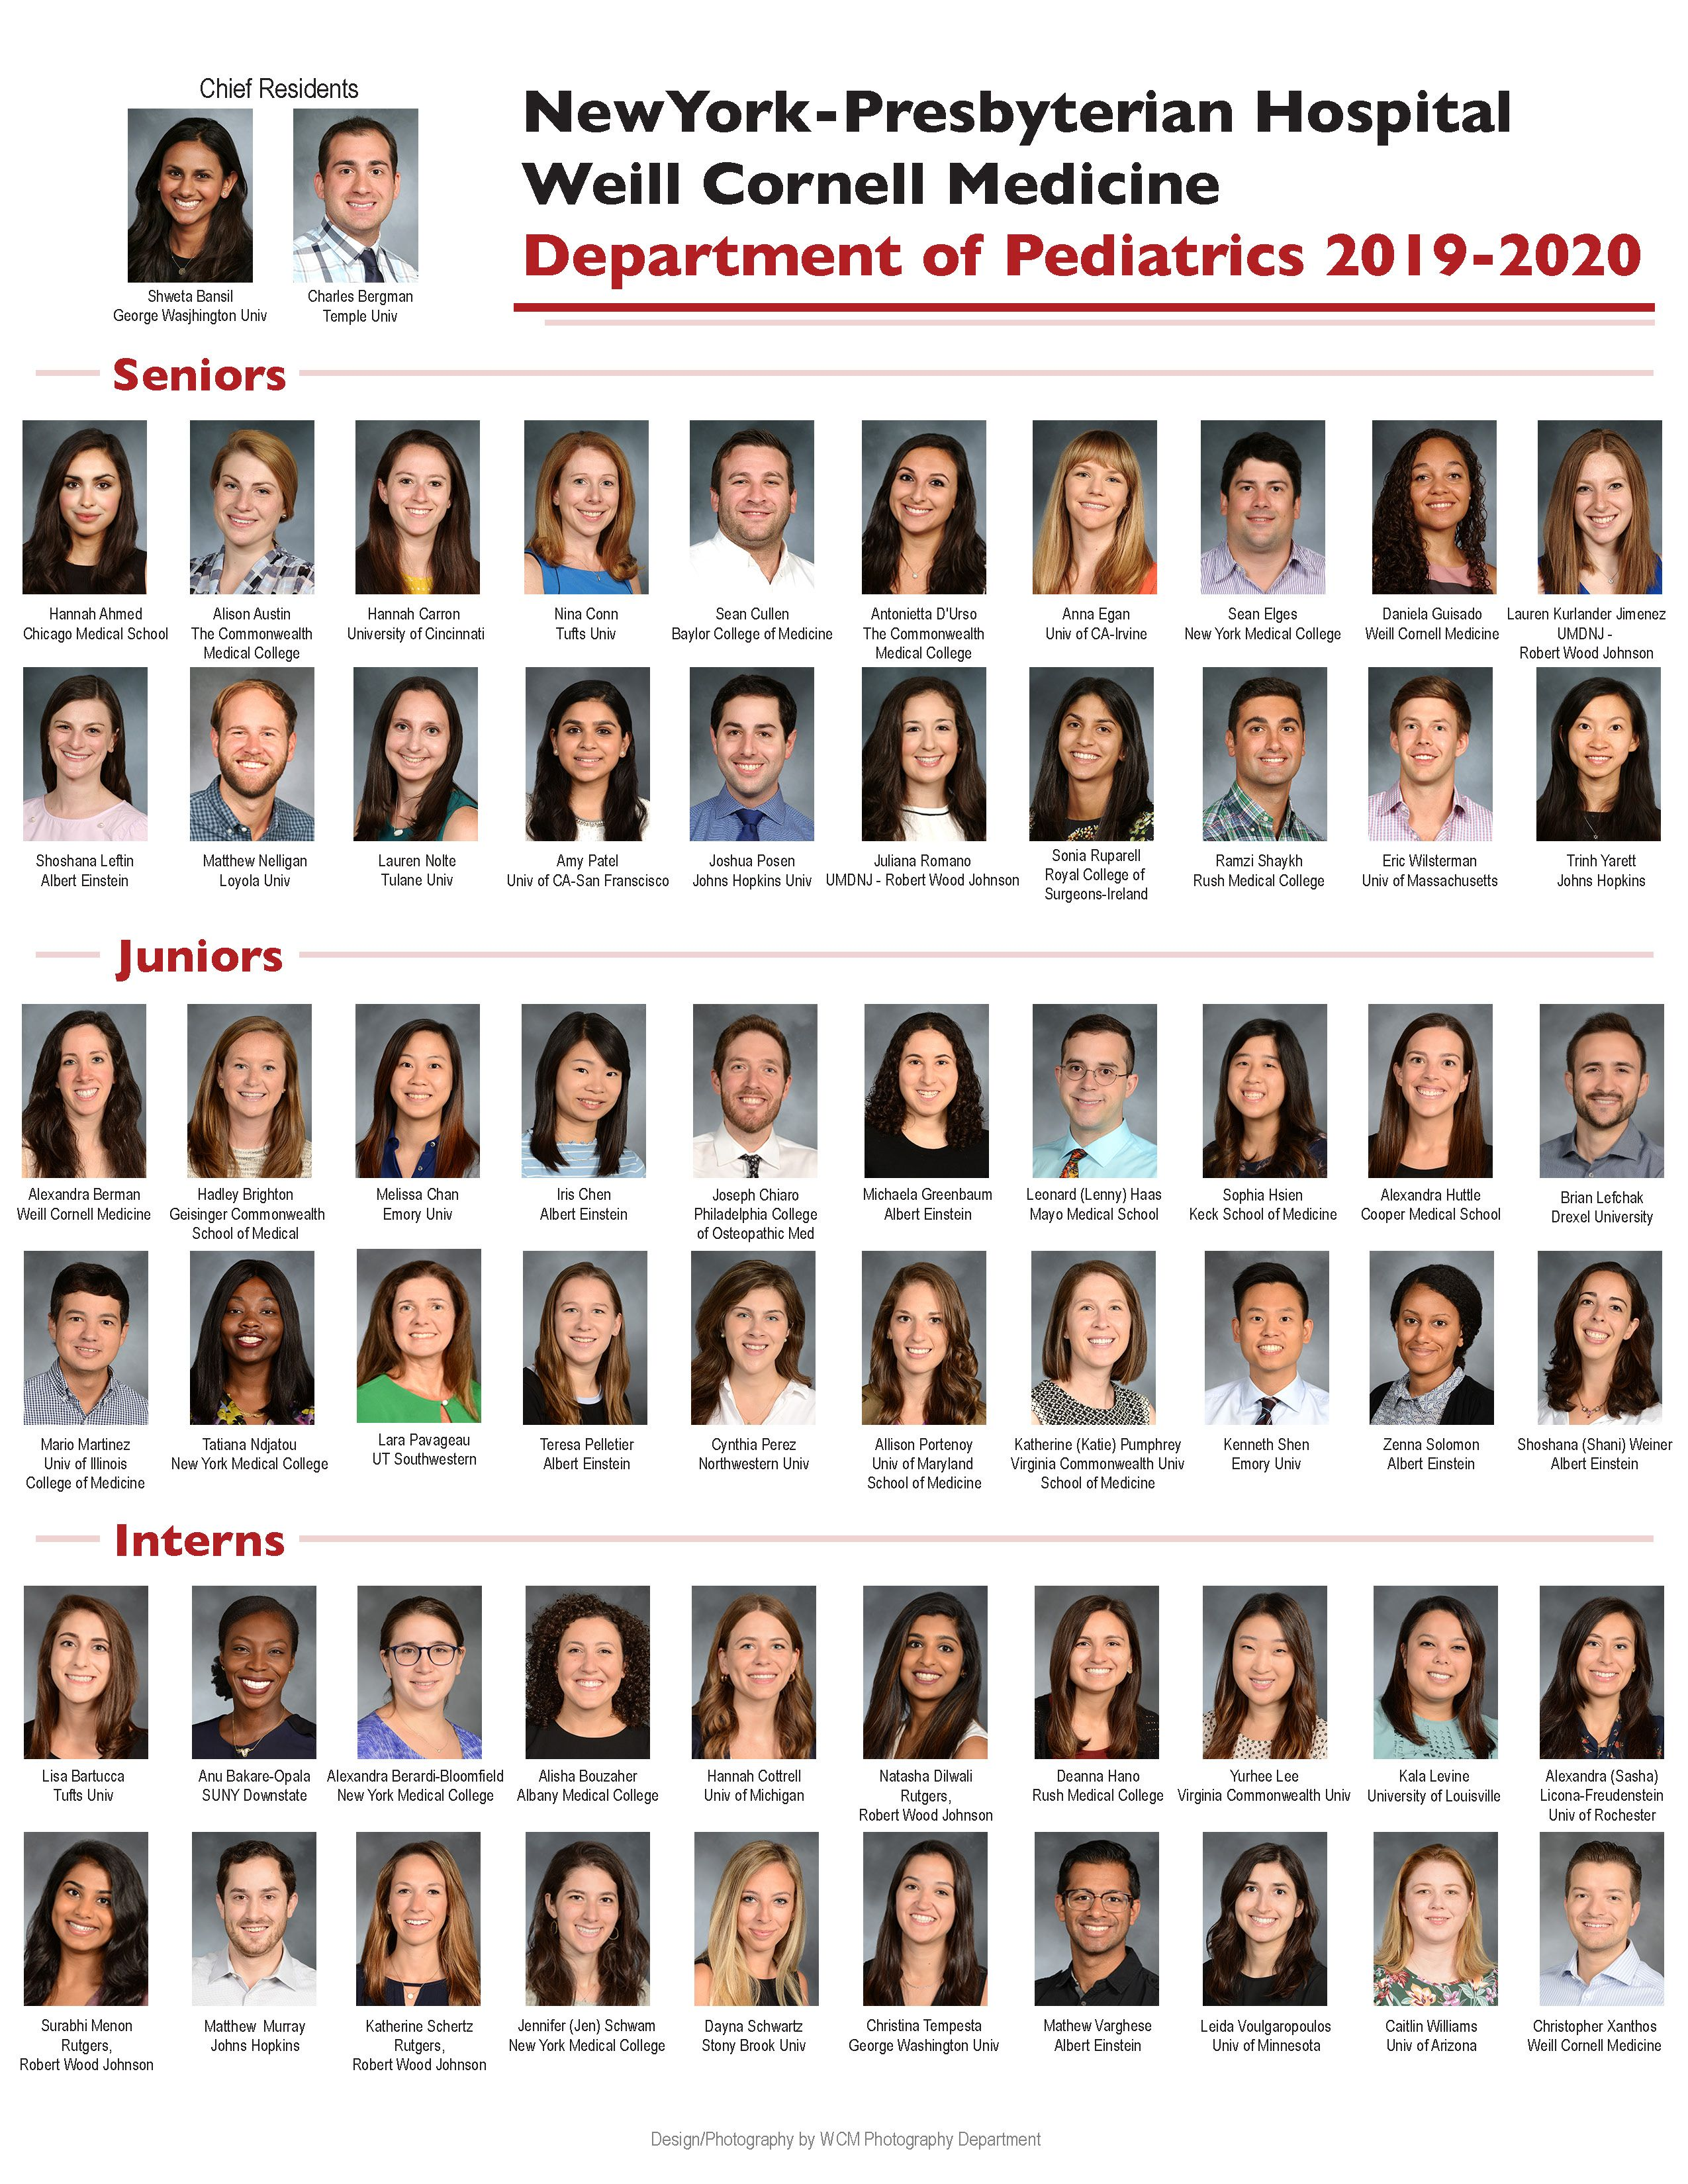 Pediatrics Department Interns and Residents 2019-2020